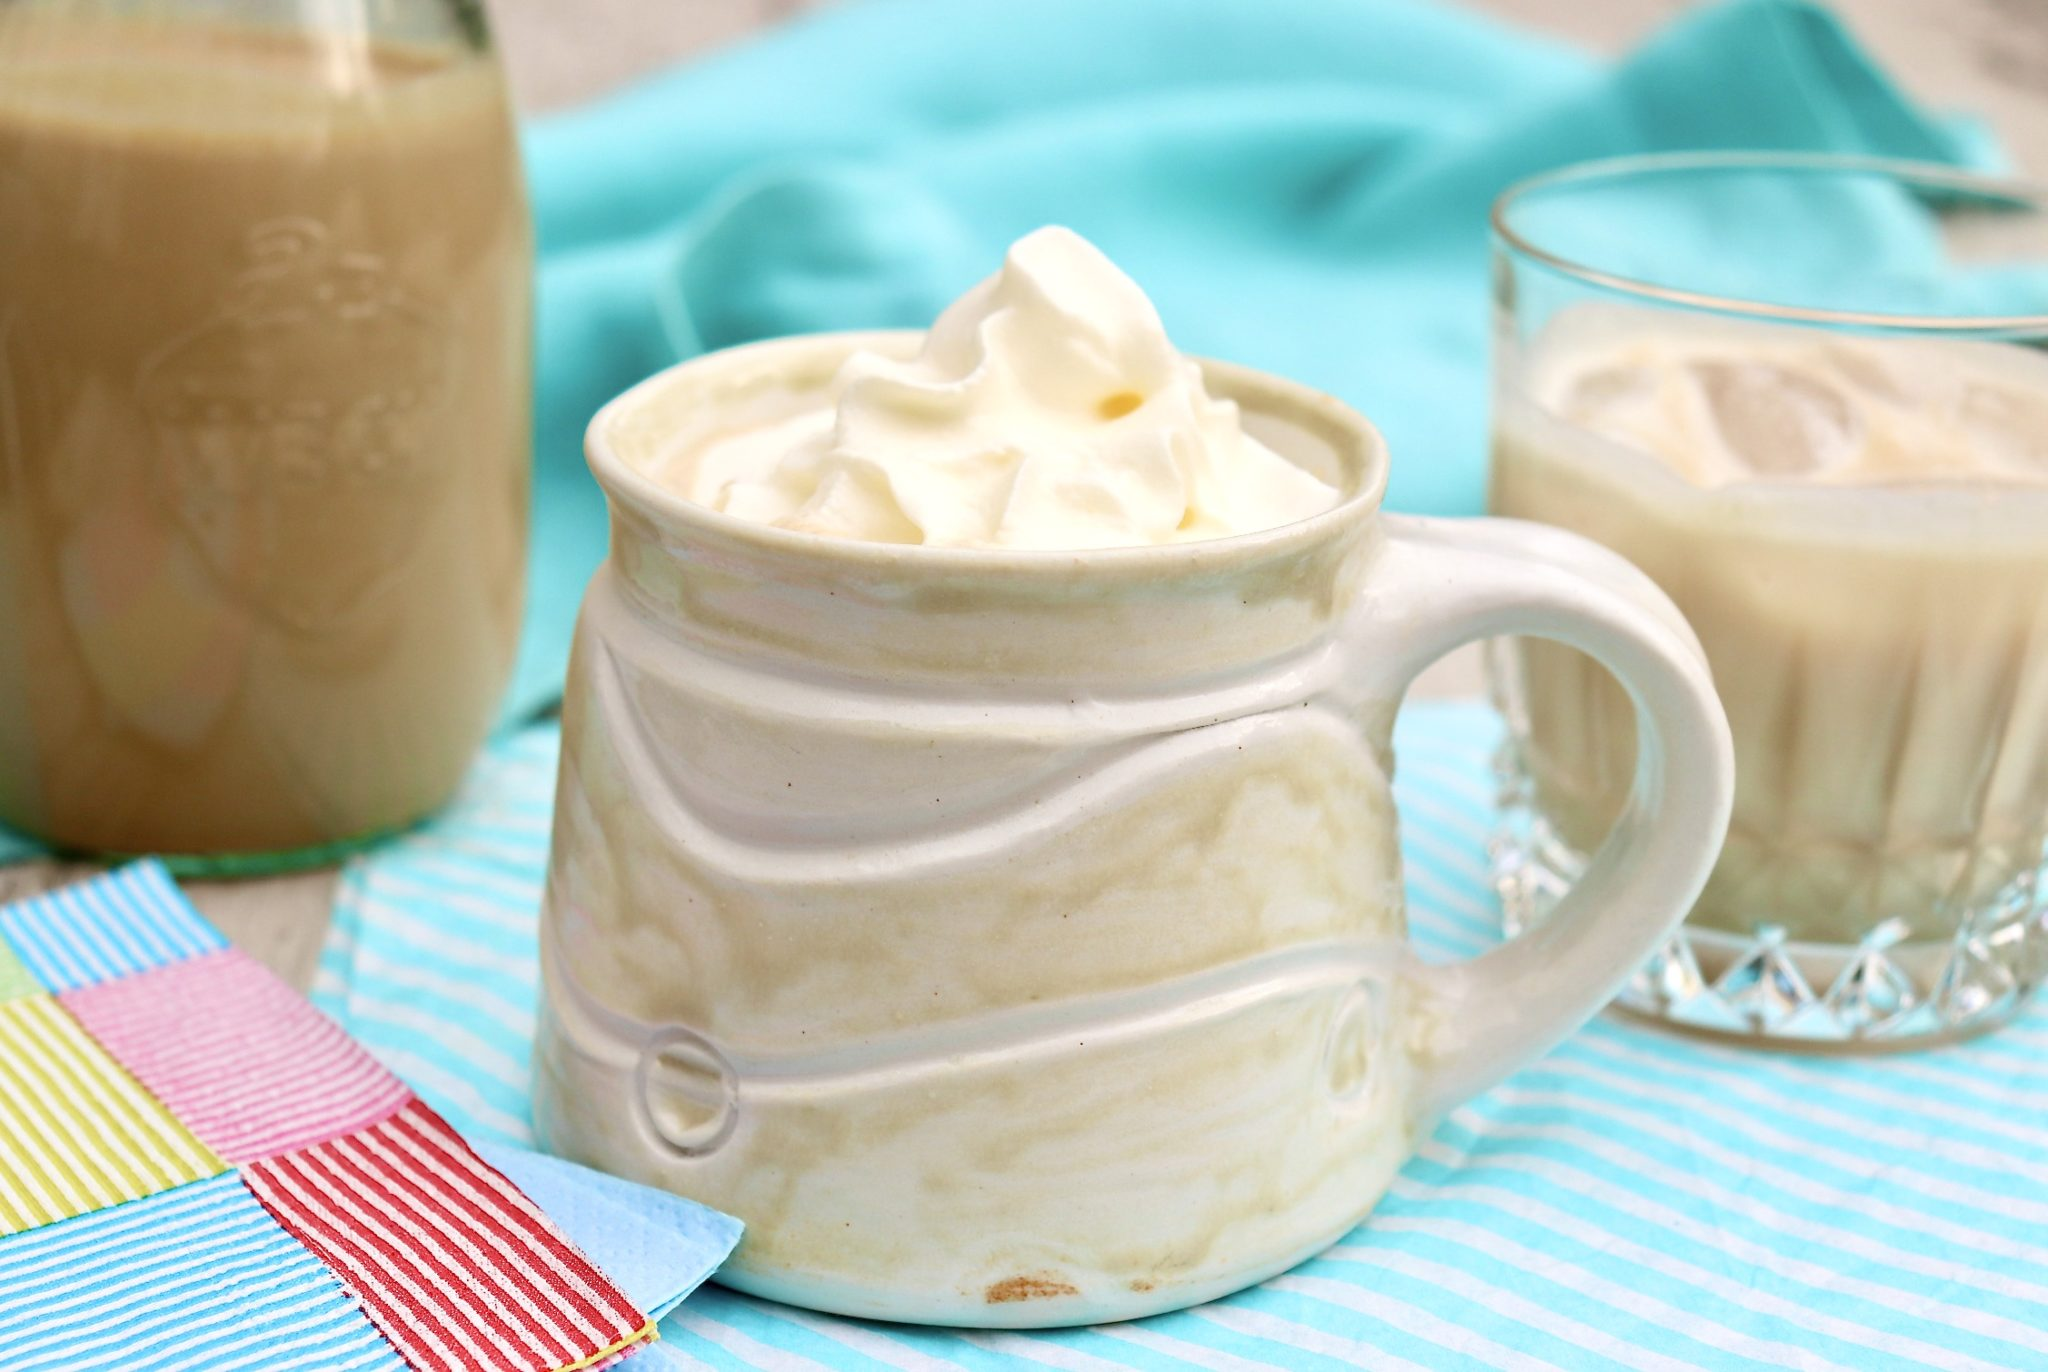 Homemade Bailey's Irish Cream is easy to make in your own kitchen and willsave you money and taste fresher, too.Lovely as a holiday or hostess gift, the sweet cream is atreat to have on hand and can beenjoyed in so many ways.